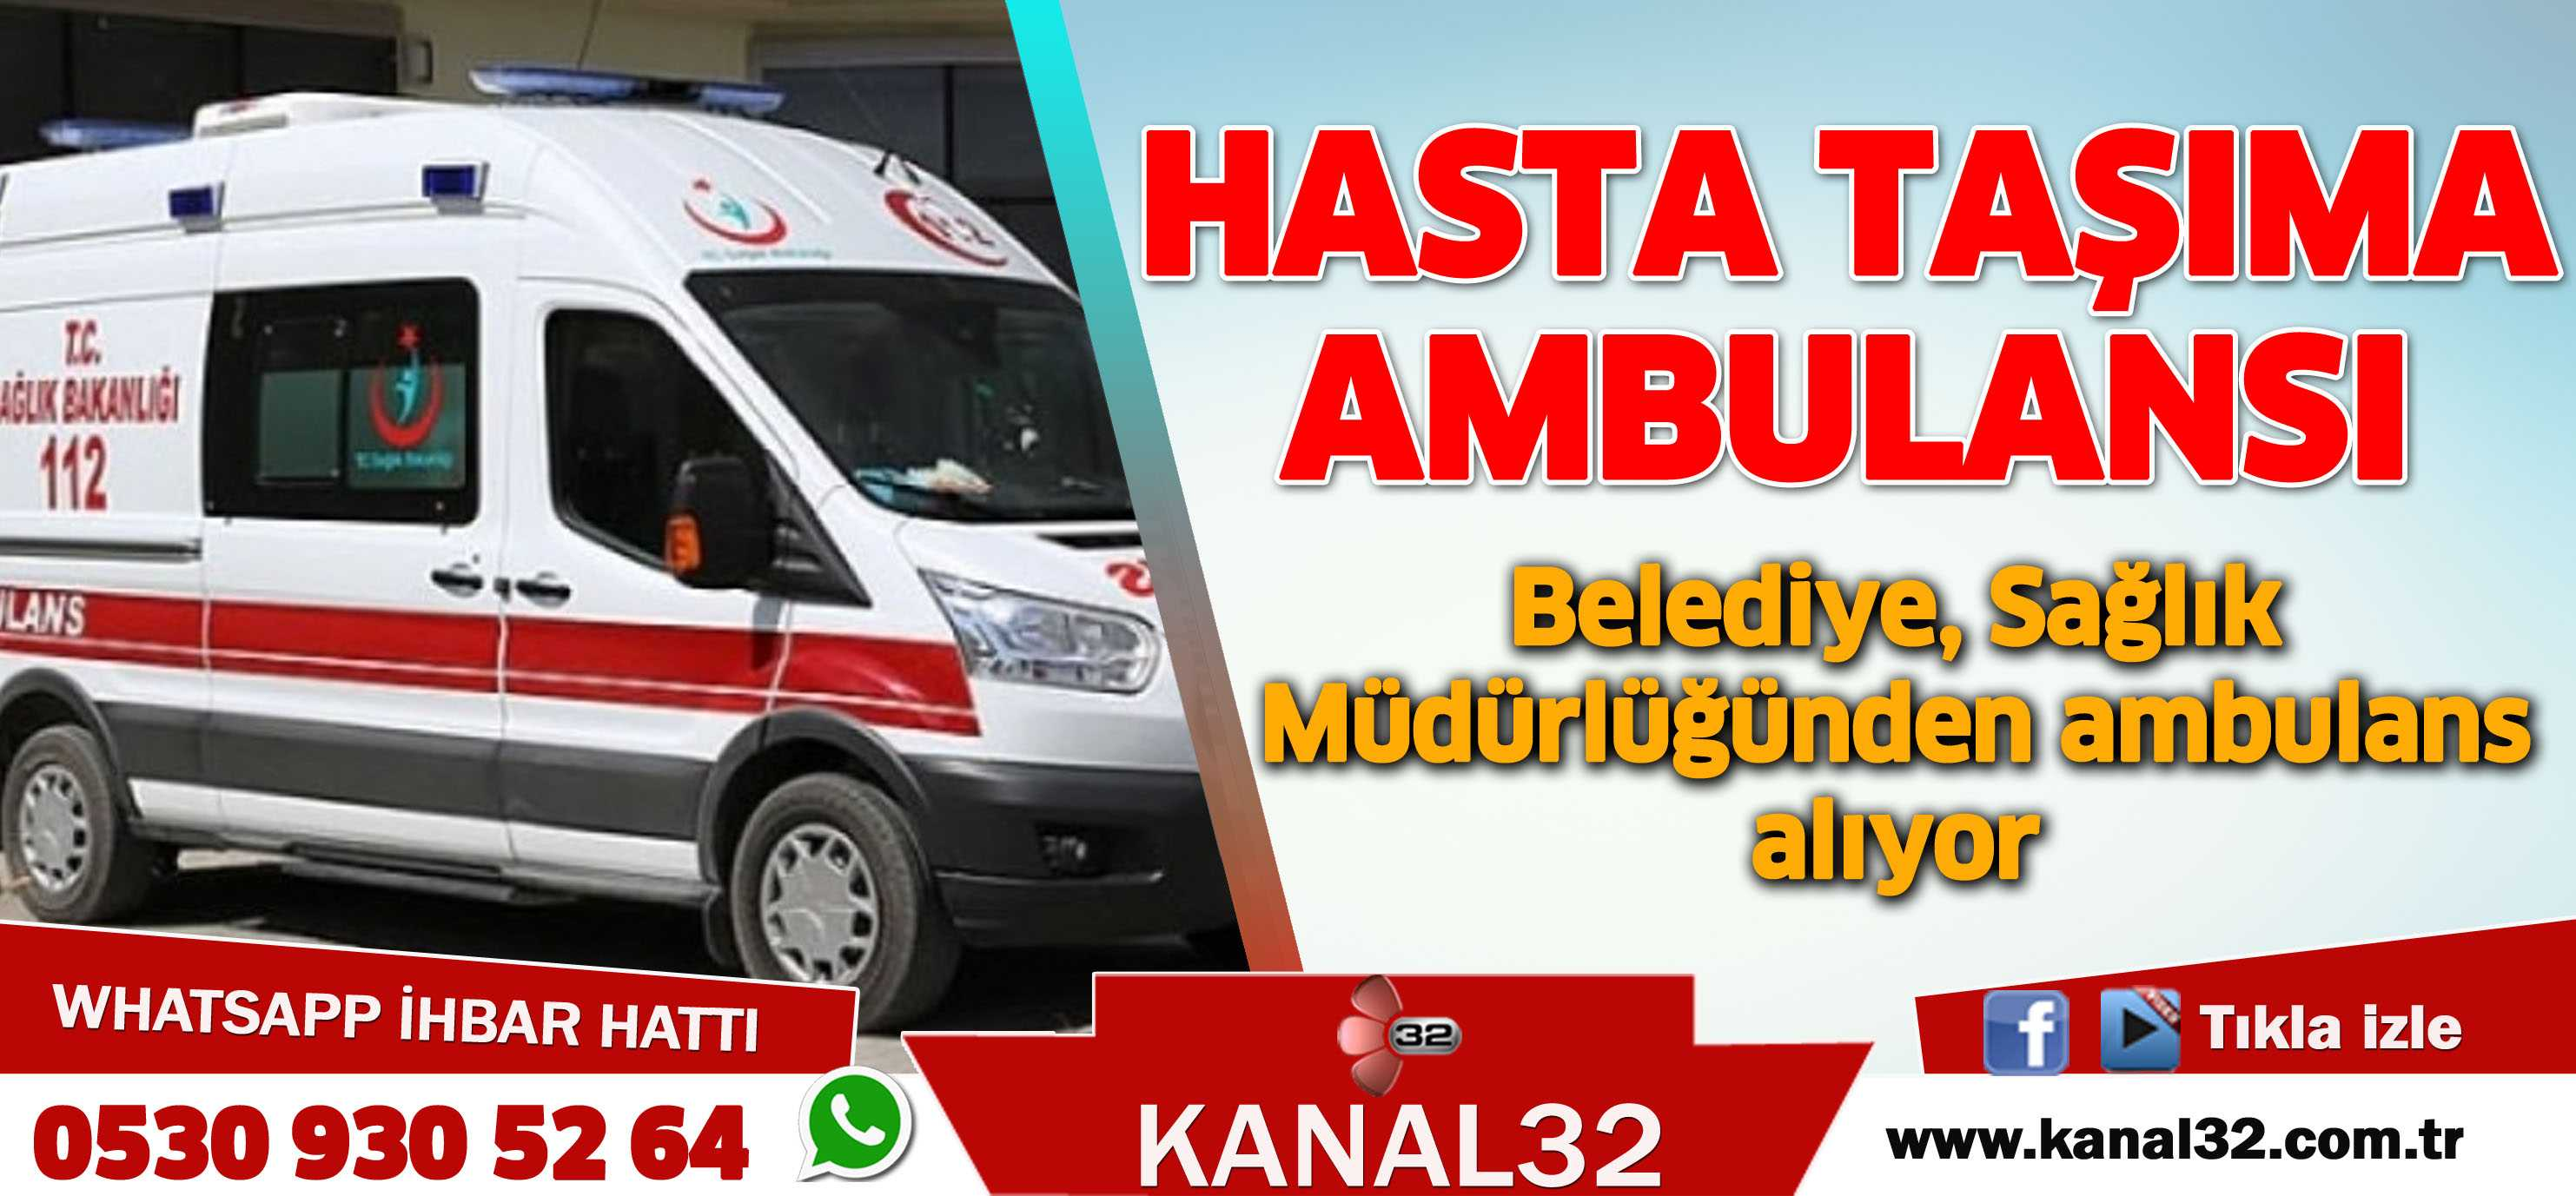 HASTA TAŞIMA AMBULANSI